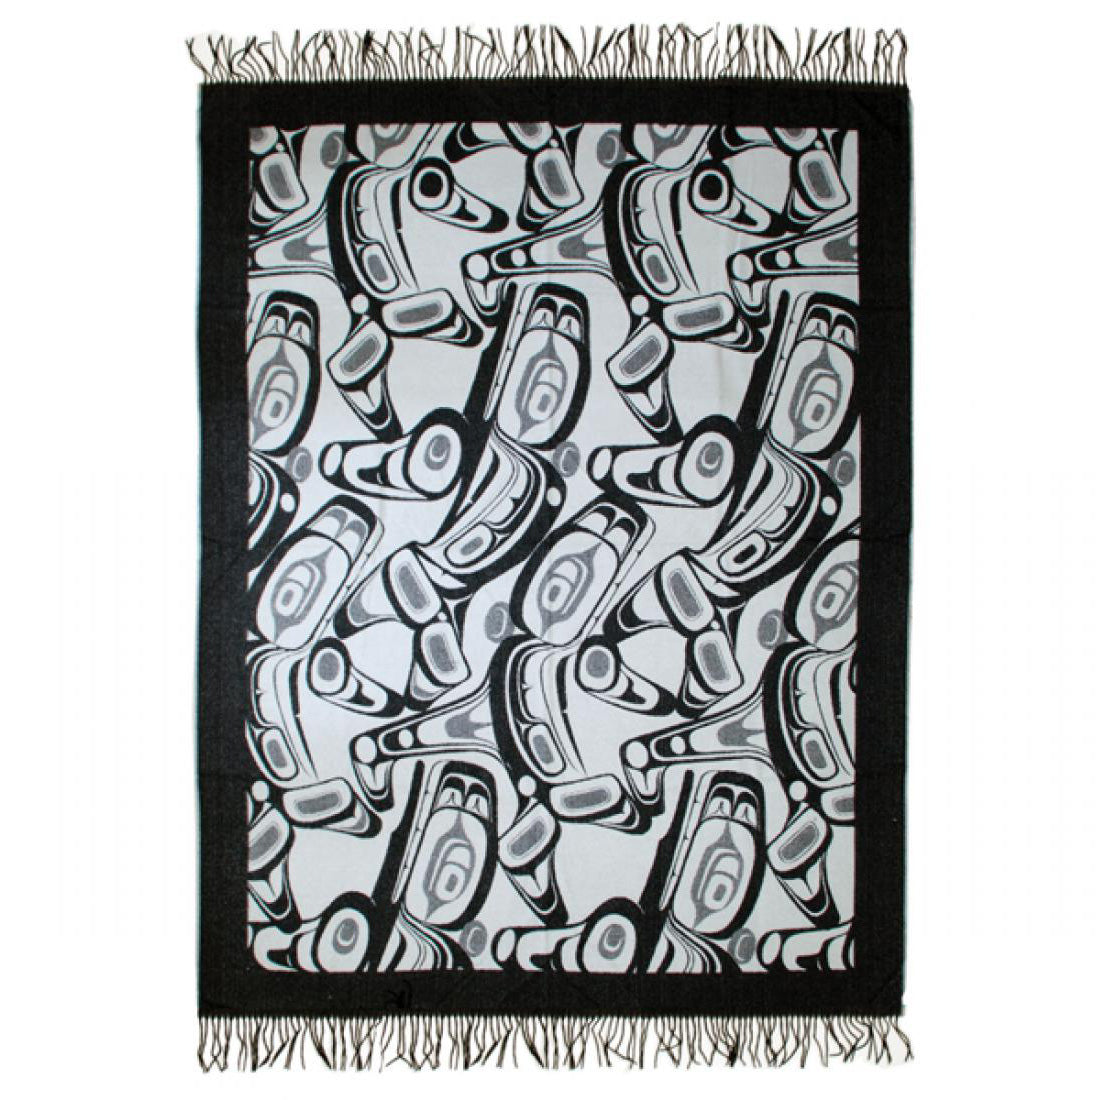 Native Art Blanket - Orca by Kelly Robinson (Grey/Black)